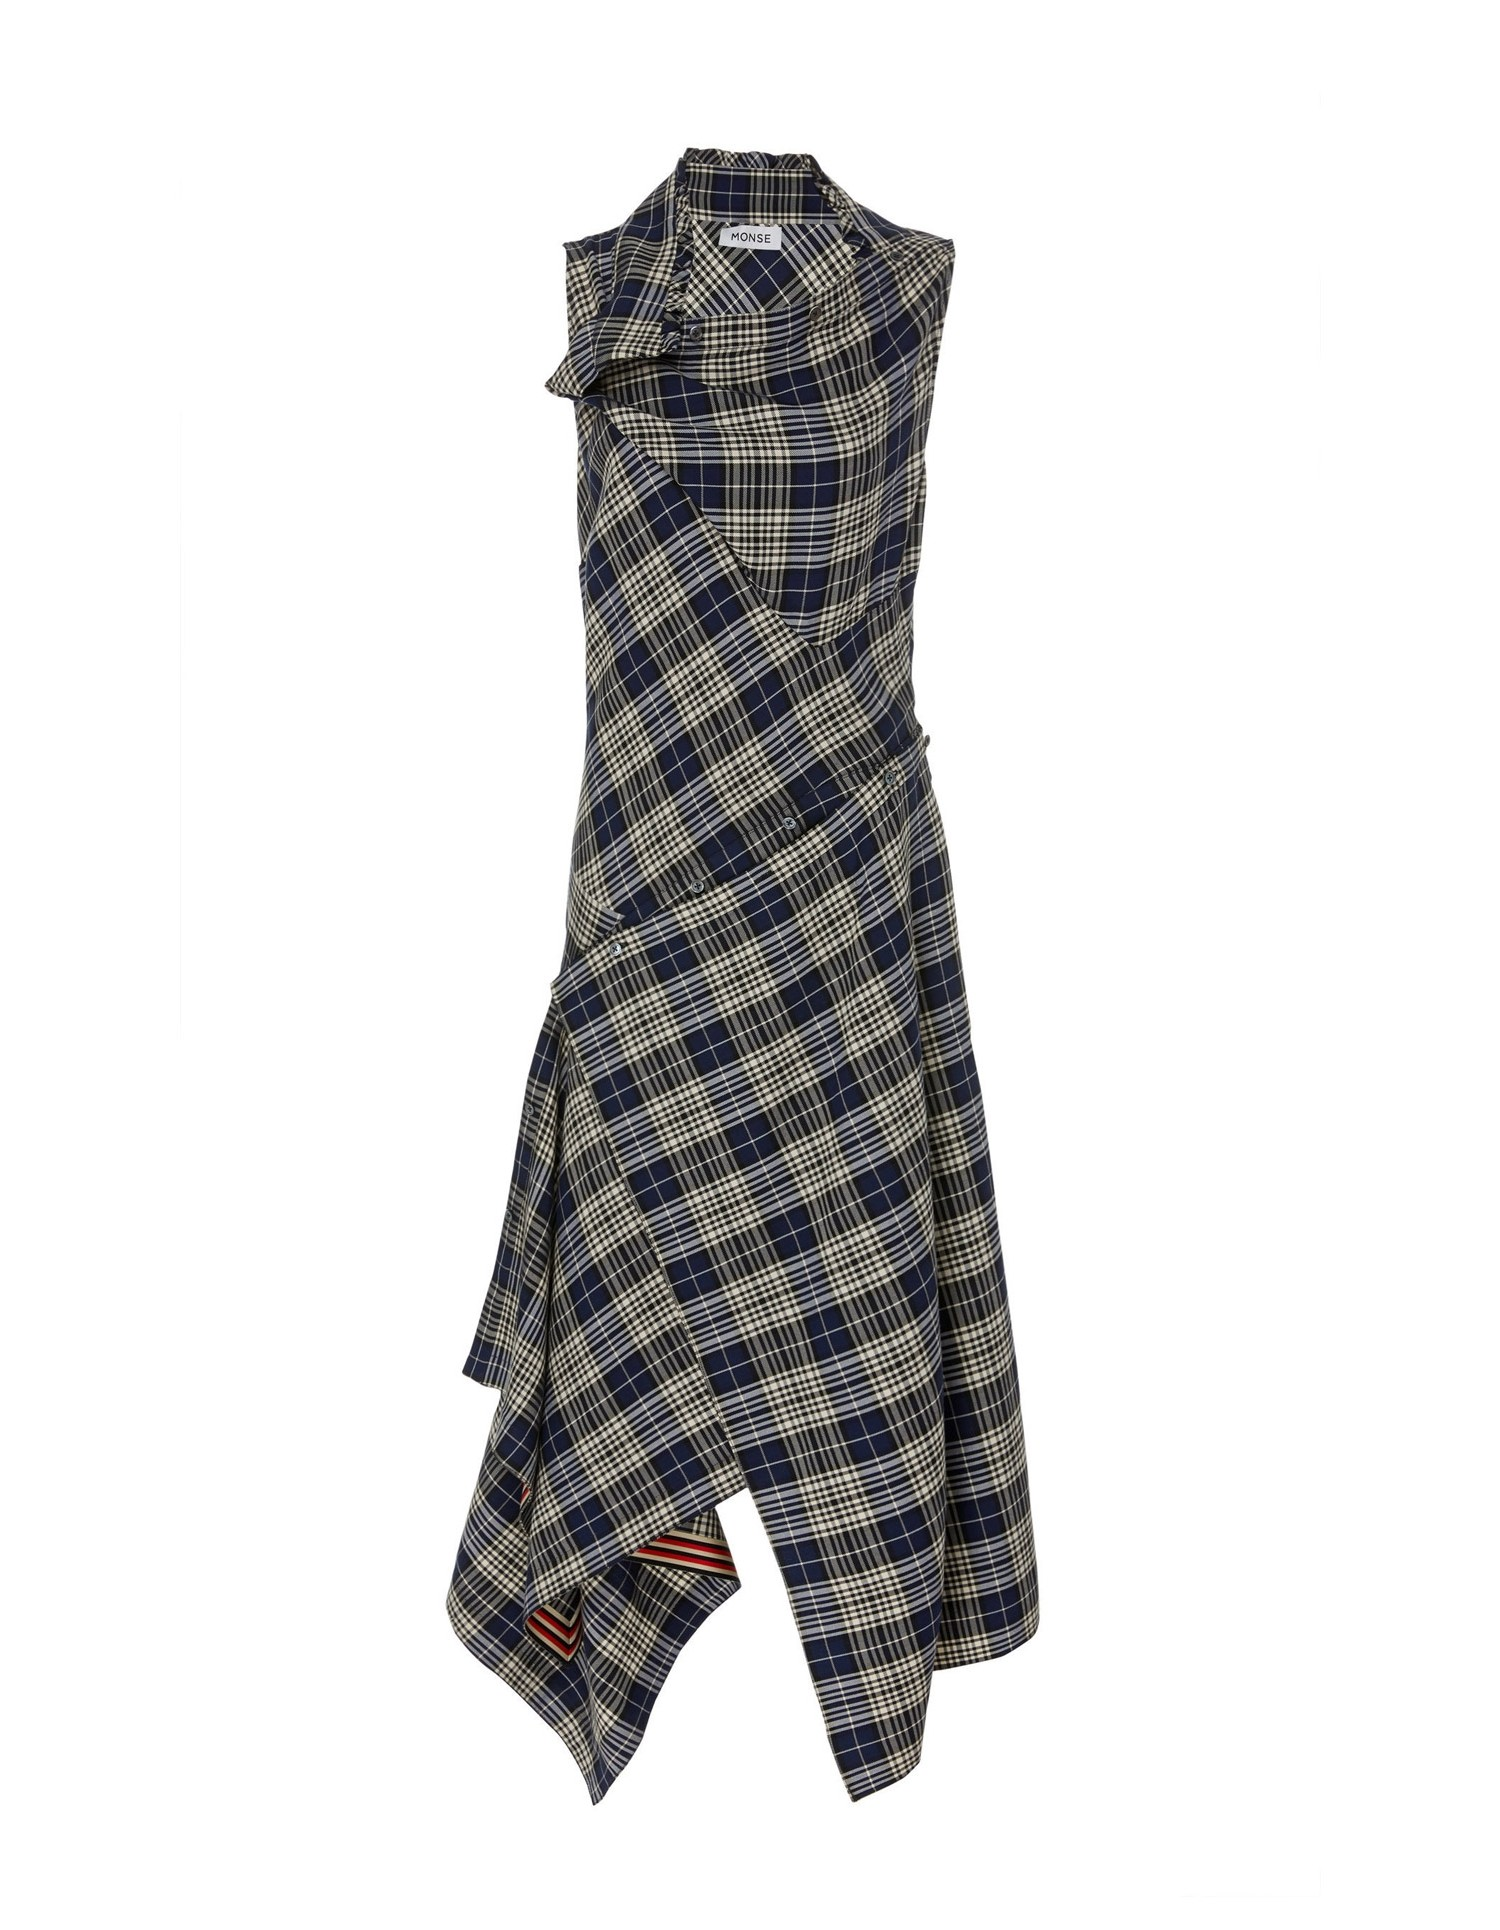 MONSE Plaid Cowl Neck Shirt Dress Flat